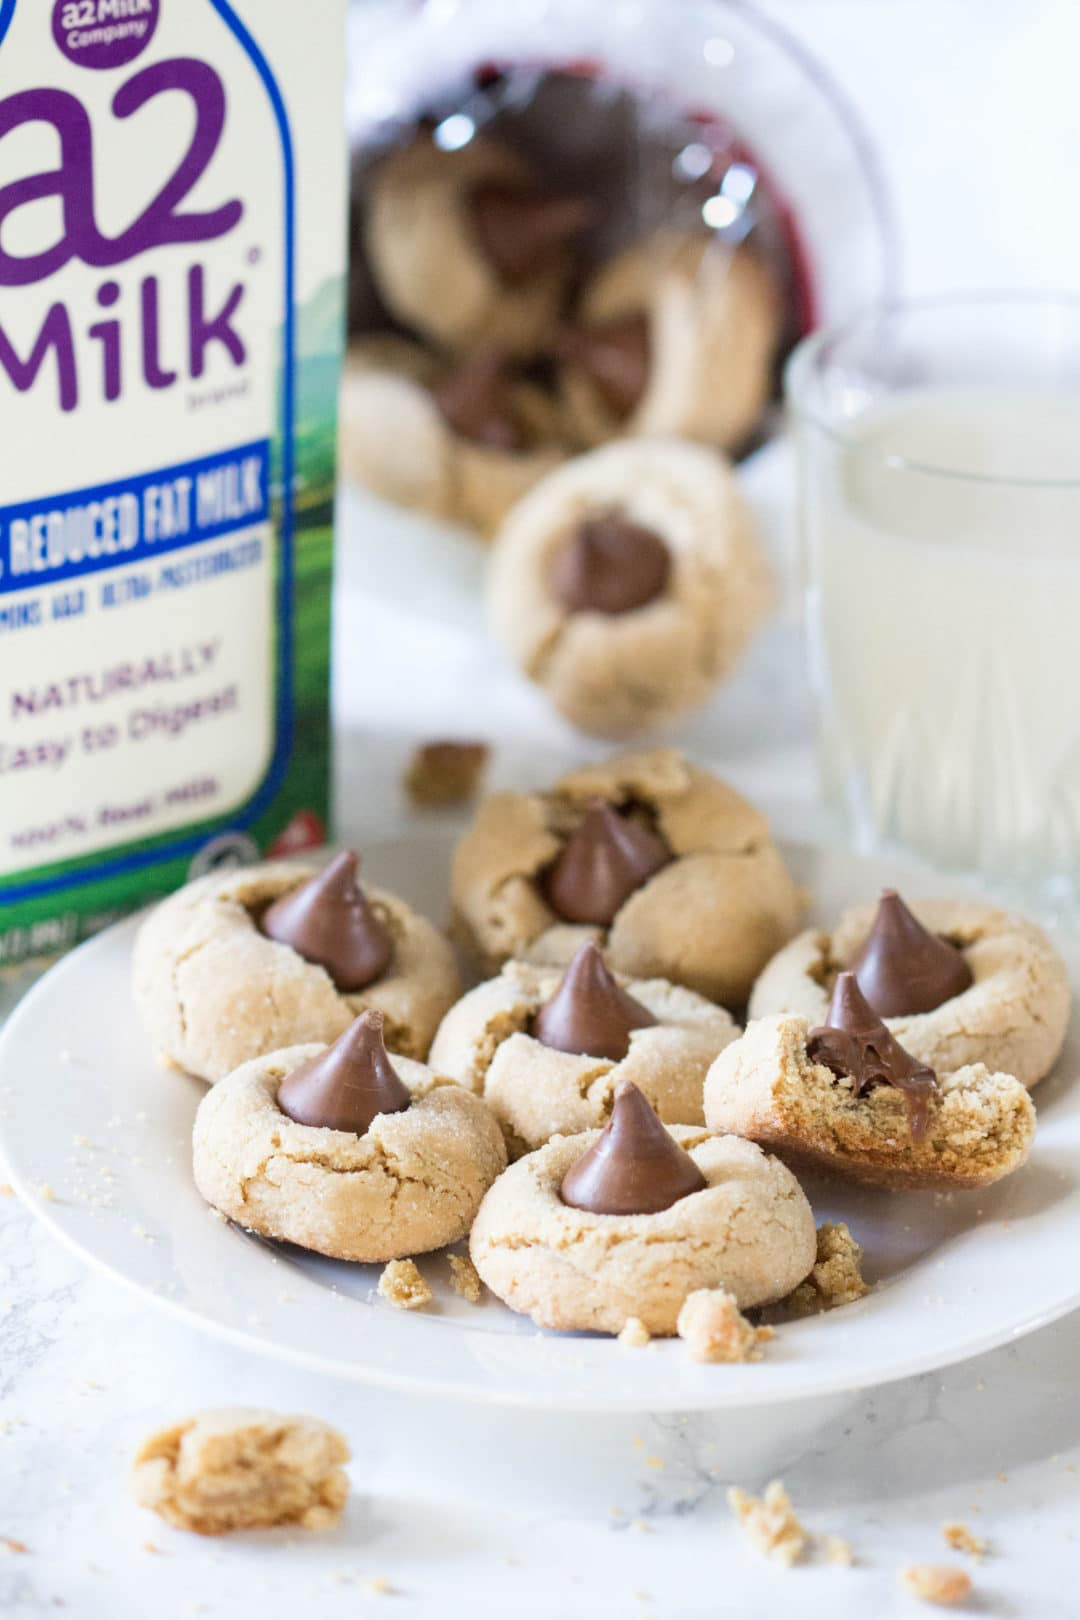 Happy National Cookie Day! To celebrate, I am gifting you all this delicious almond butter blossom cookie recipe. Cookies are a holiday must, try this recipe out for your next gathering! |krollskorner.com